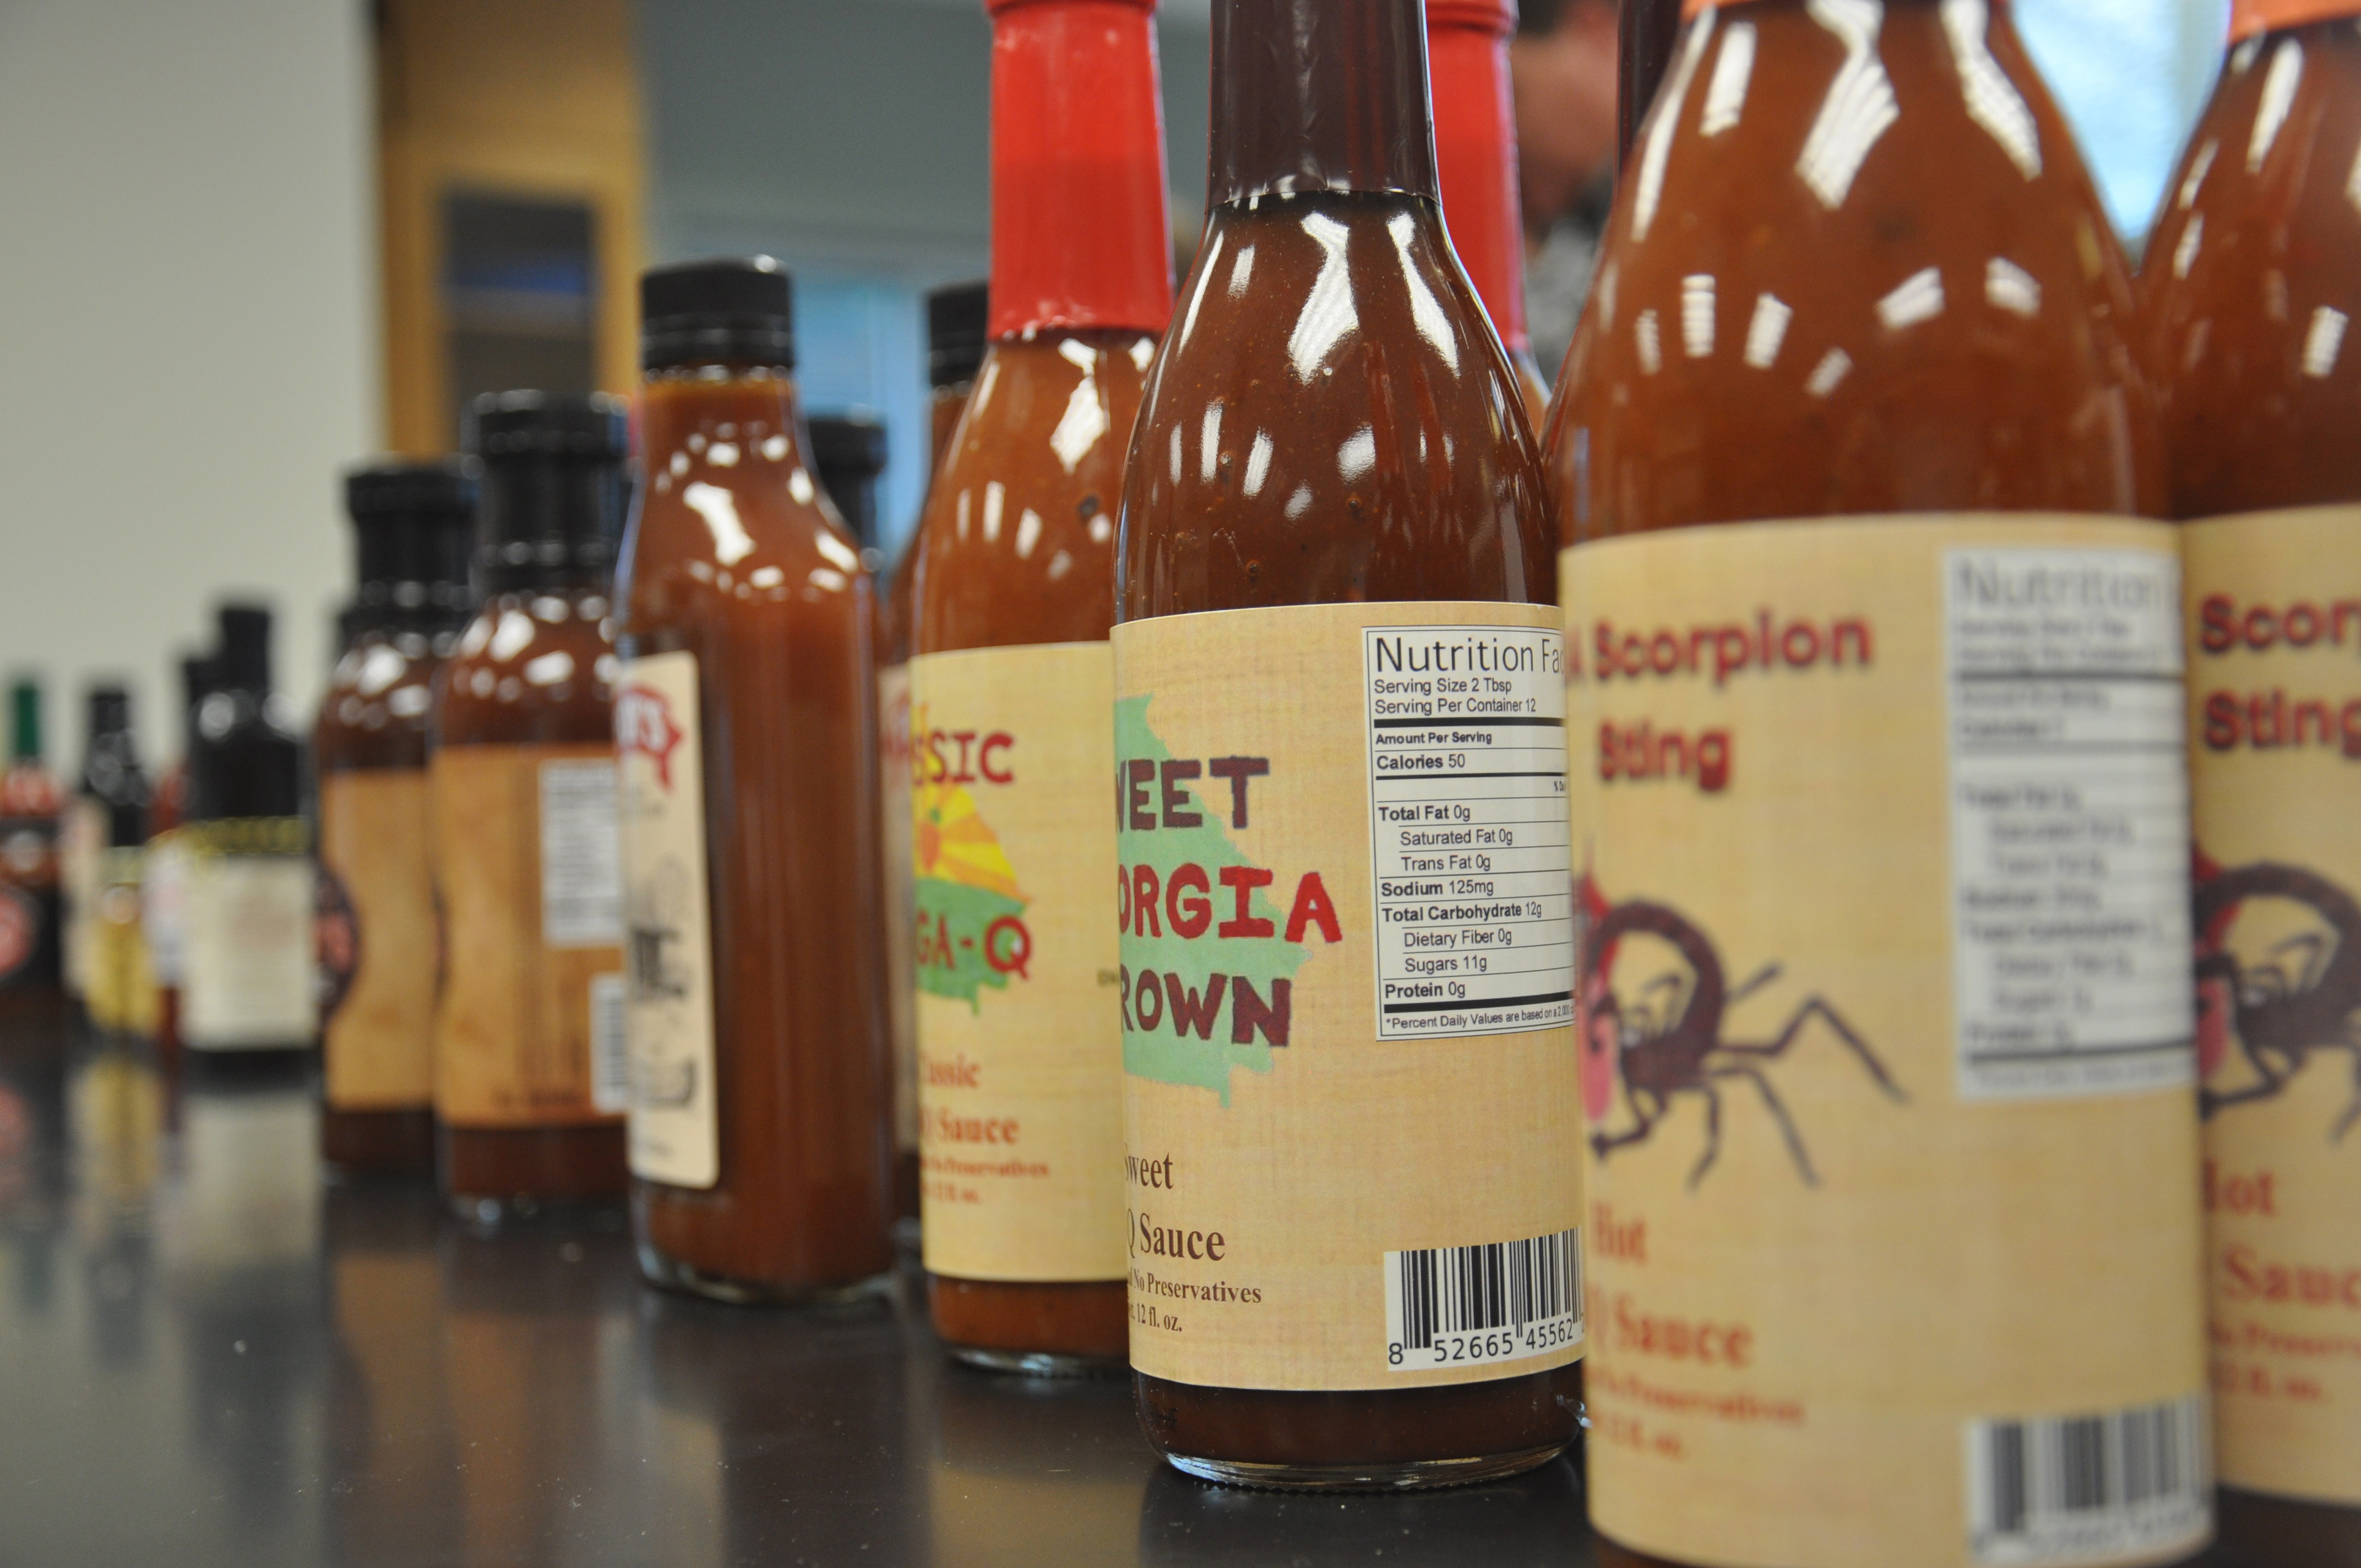 More than 20 barbecue sauces alone were submitted to the 2014 Flavor of Georgia Food Product Contest. This year saw the largest number of entries in the contest's seven year history.